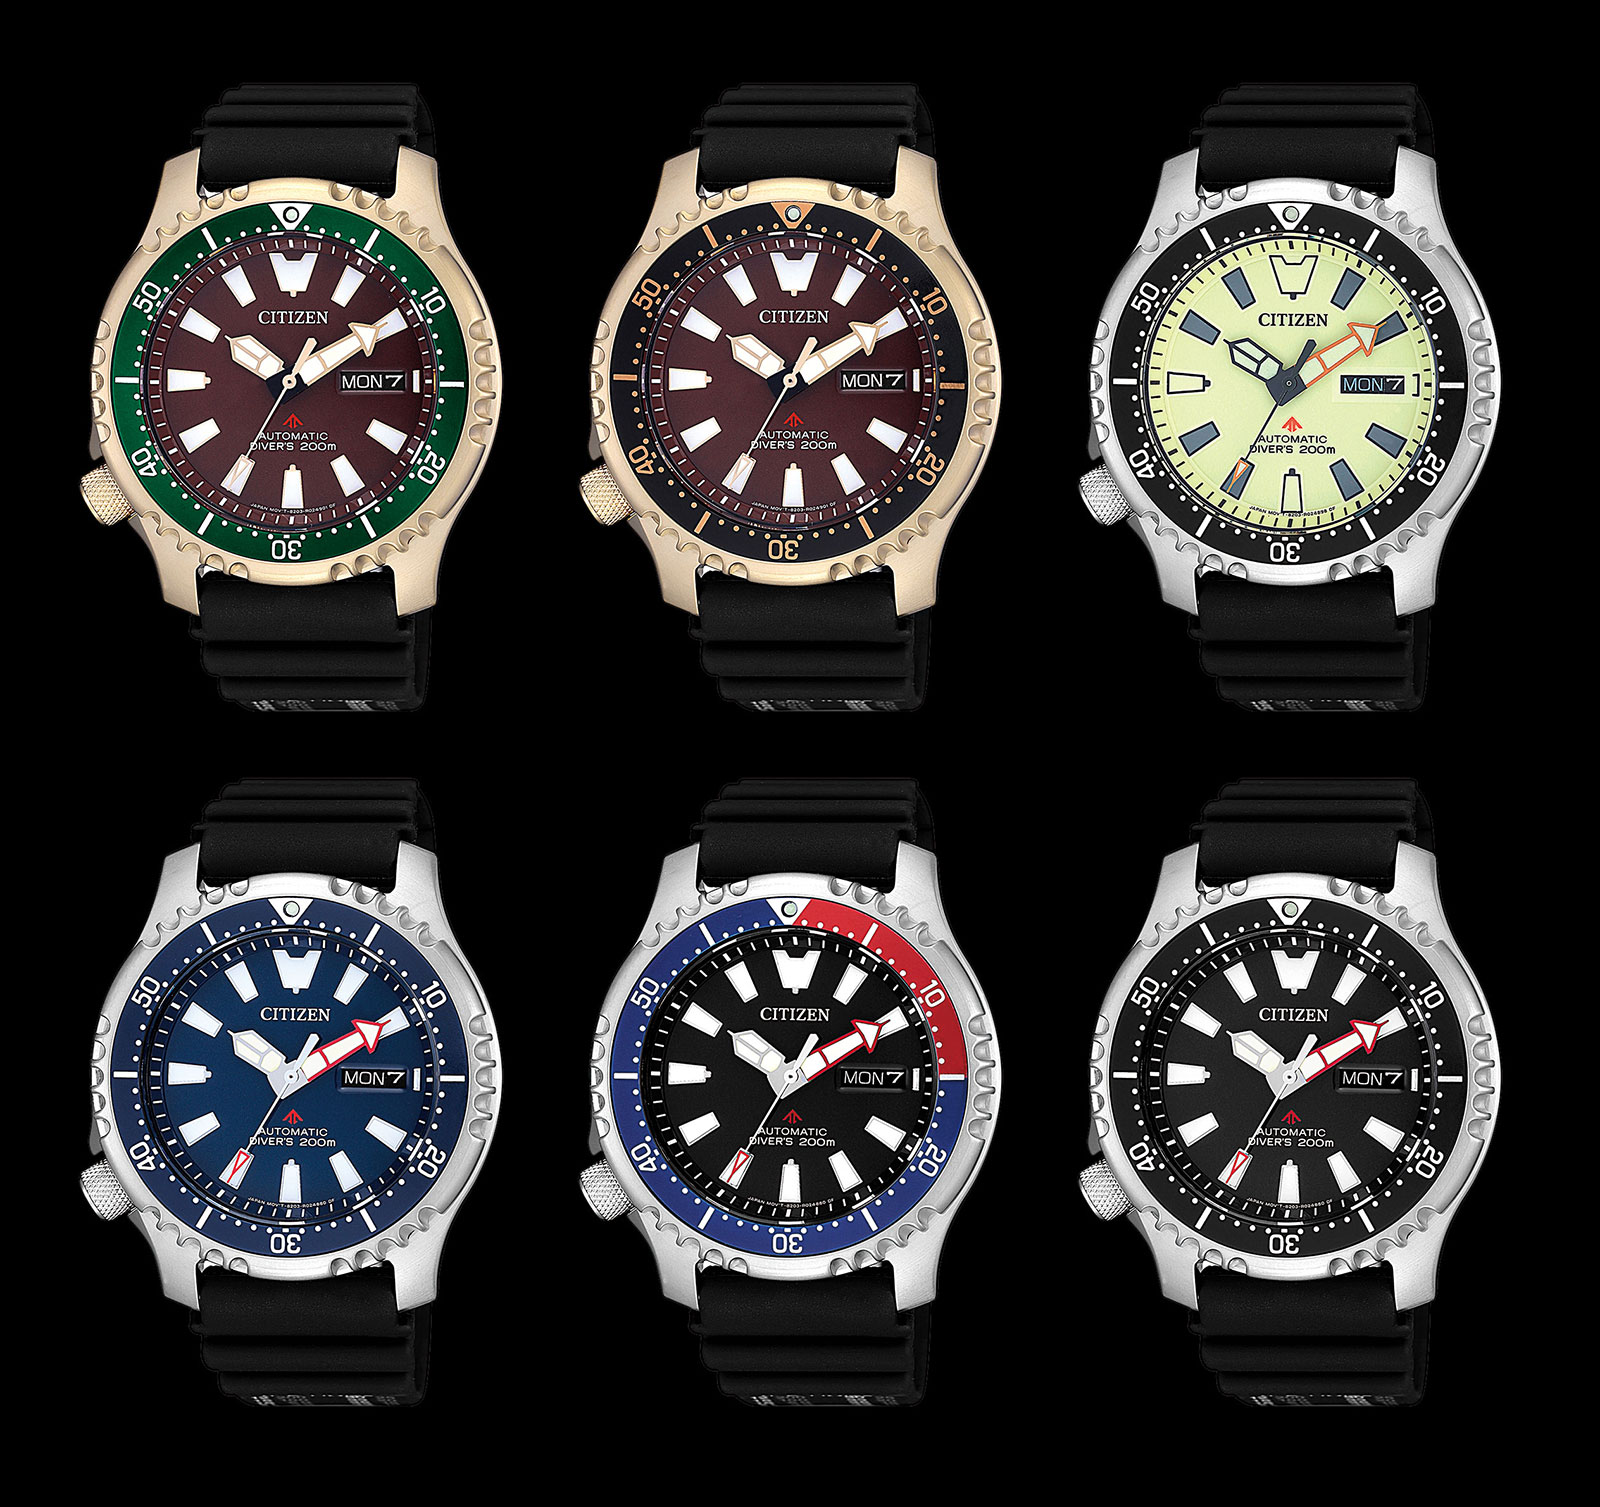 Citizen Promaster Asia edition diver watch 5